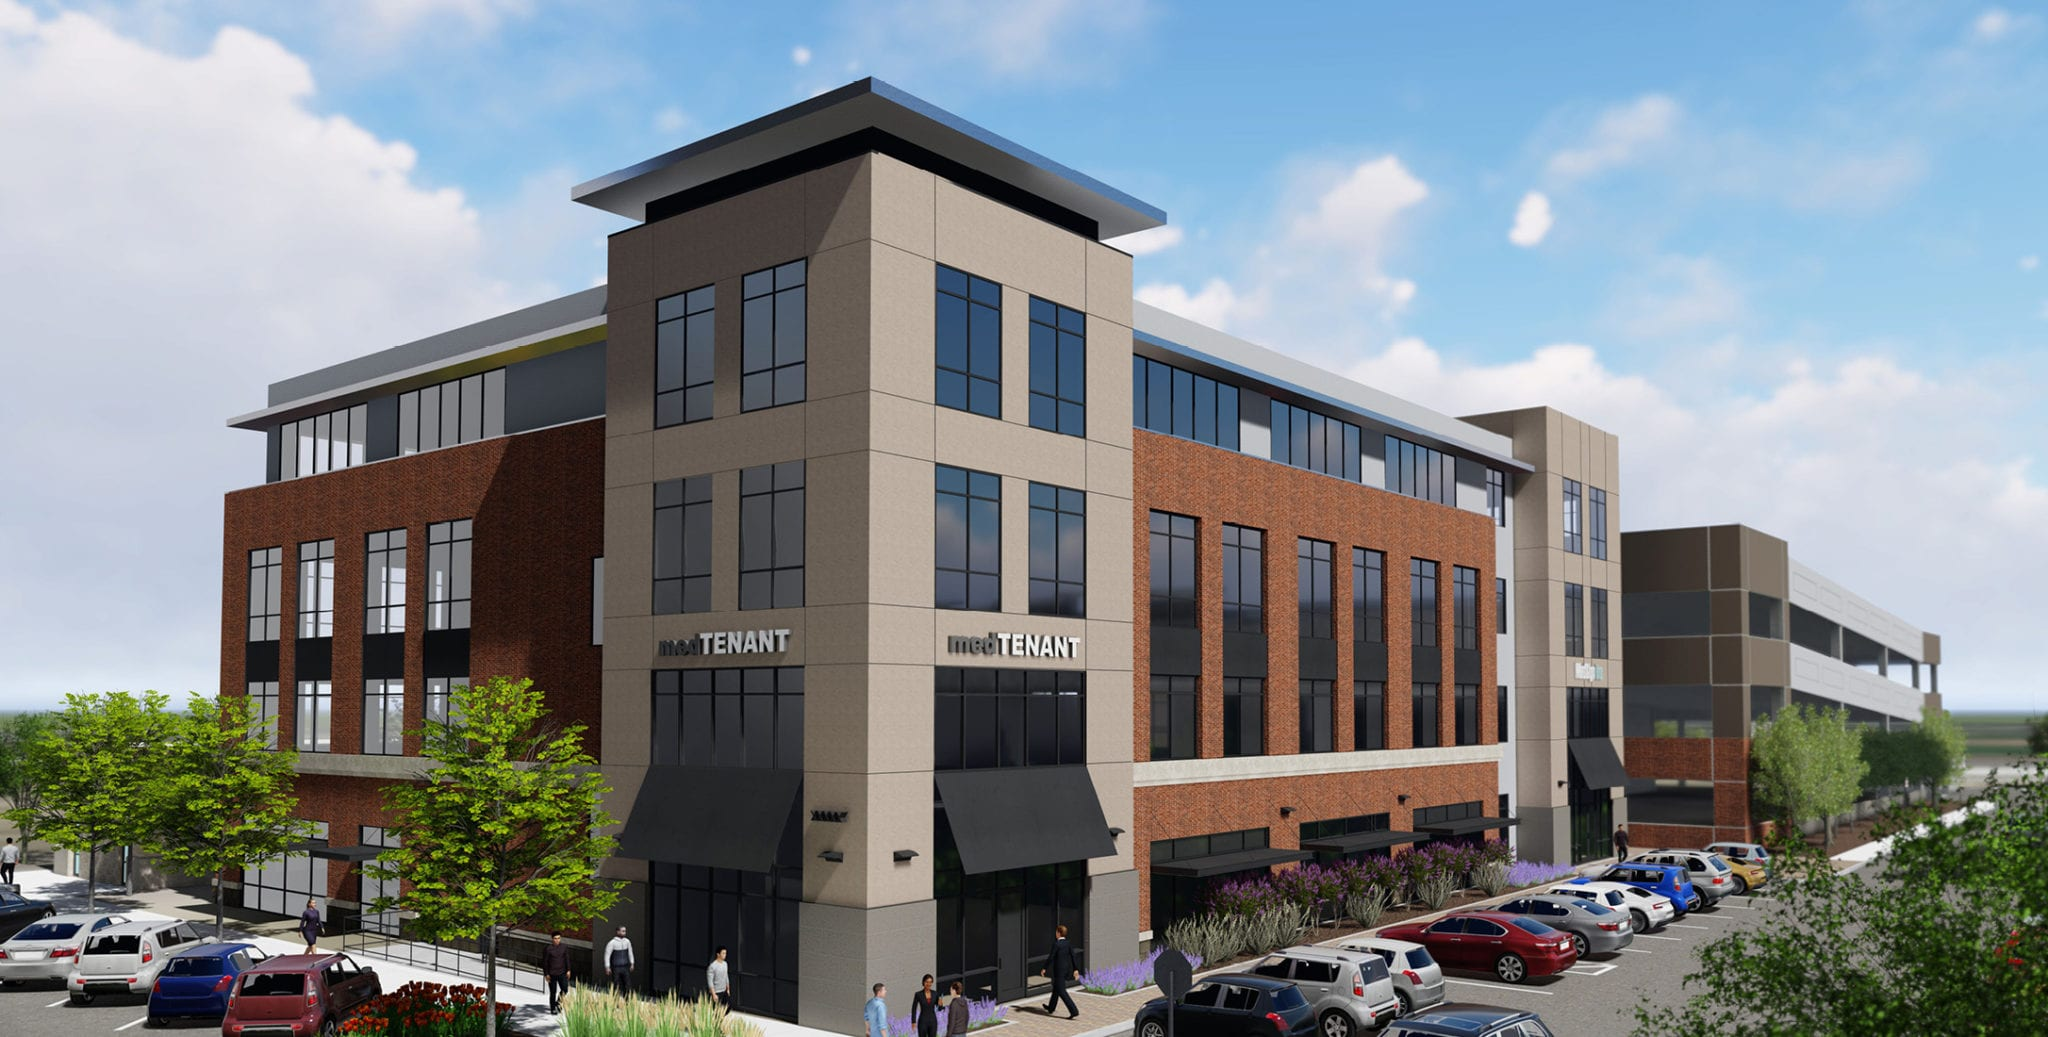 Sawtooth Development Group broke ground April 4 on Superior Medical, a four-story, 60,000-square-foot multitenant medical office building at Three Superior Drive in the Superior Town Center in Superior.